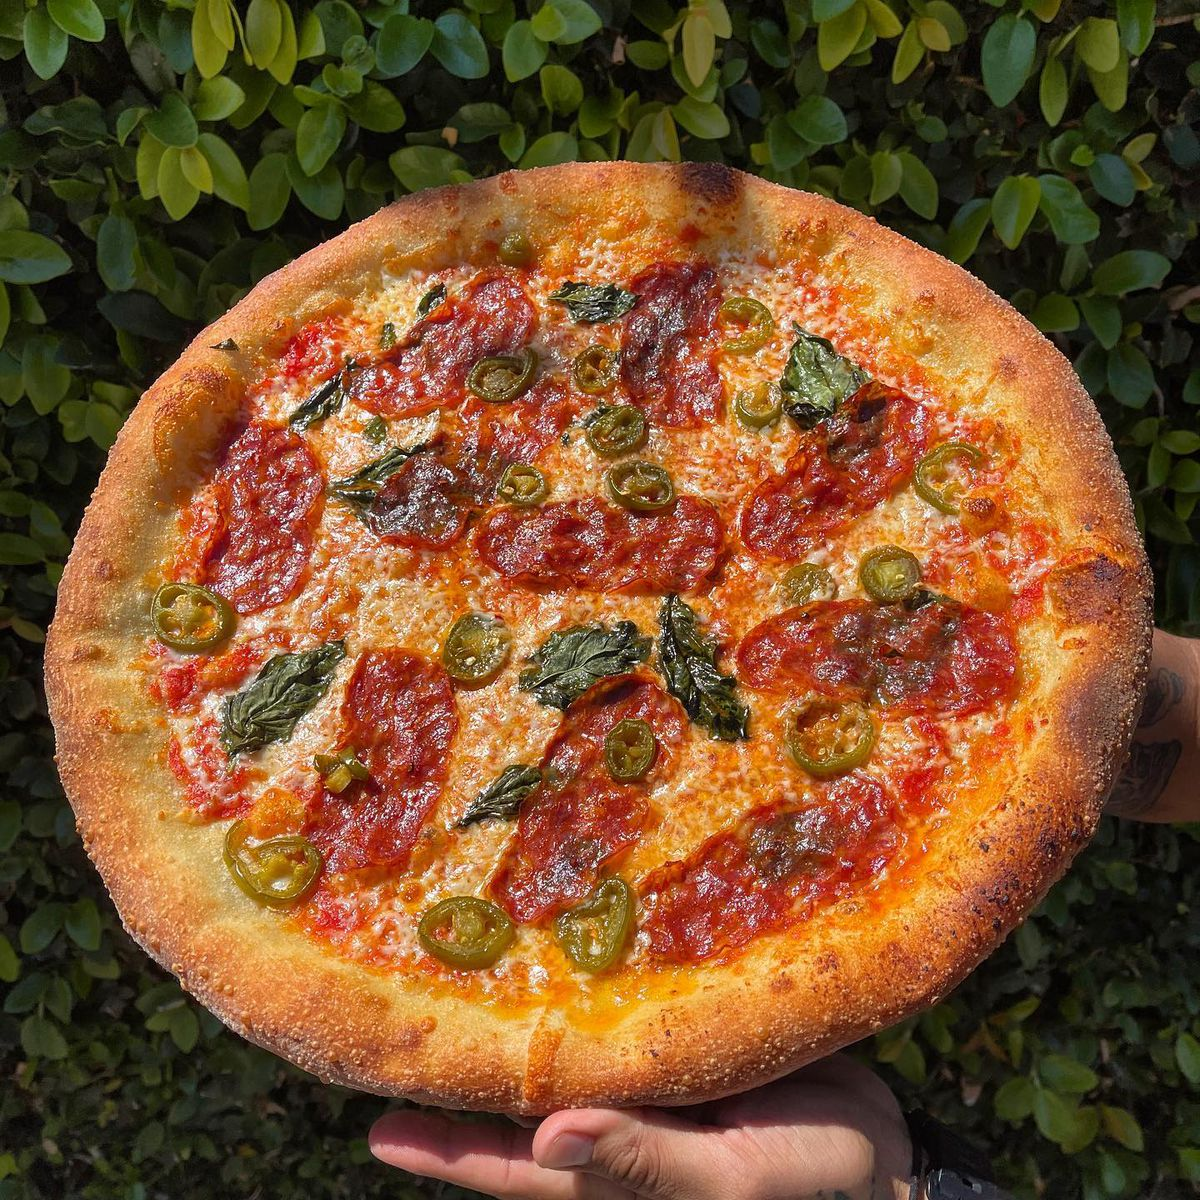 Dougie fresh pizza from Little Coyote in Long Beach.